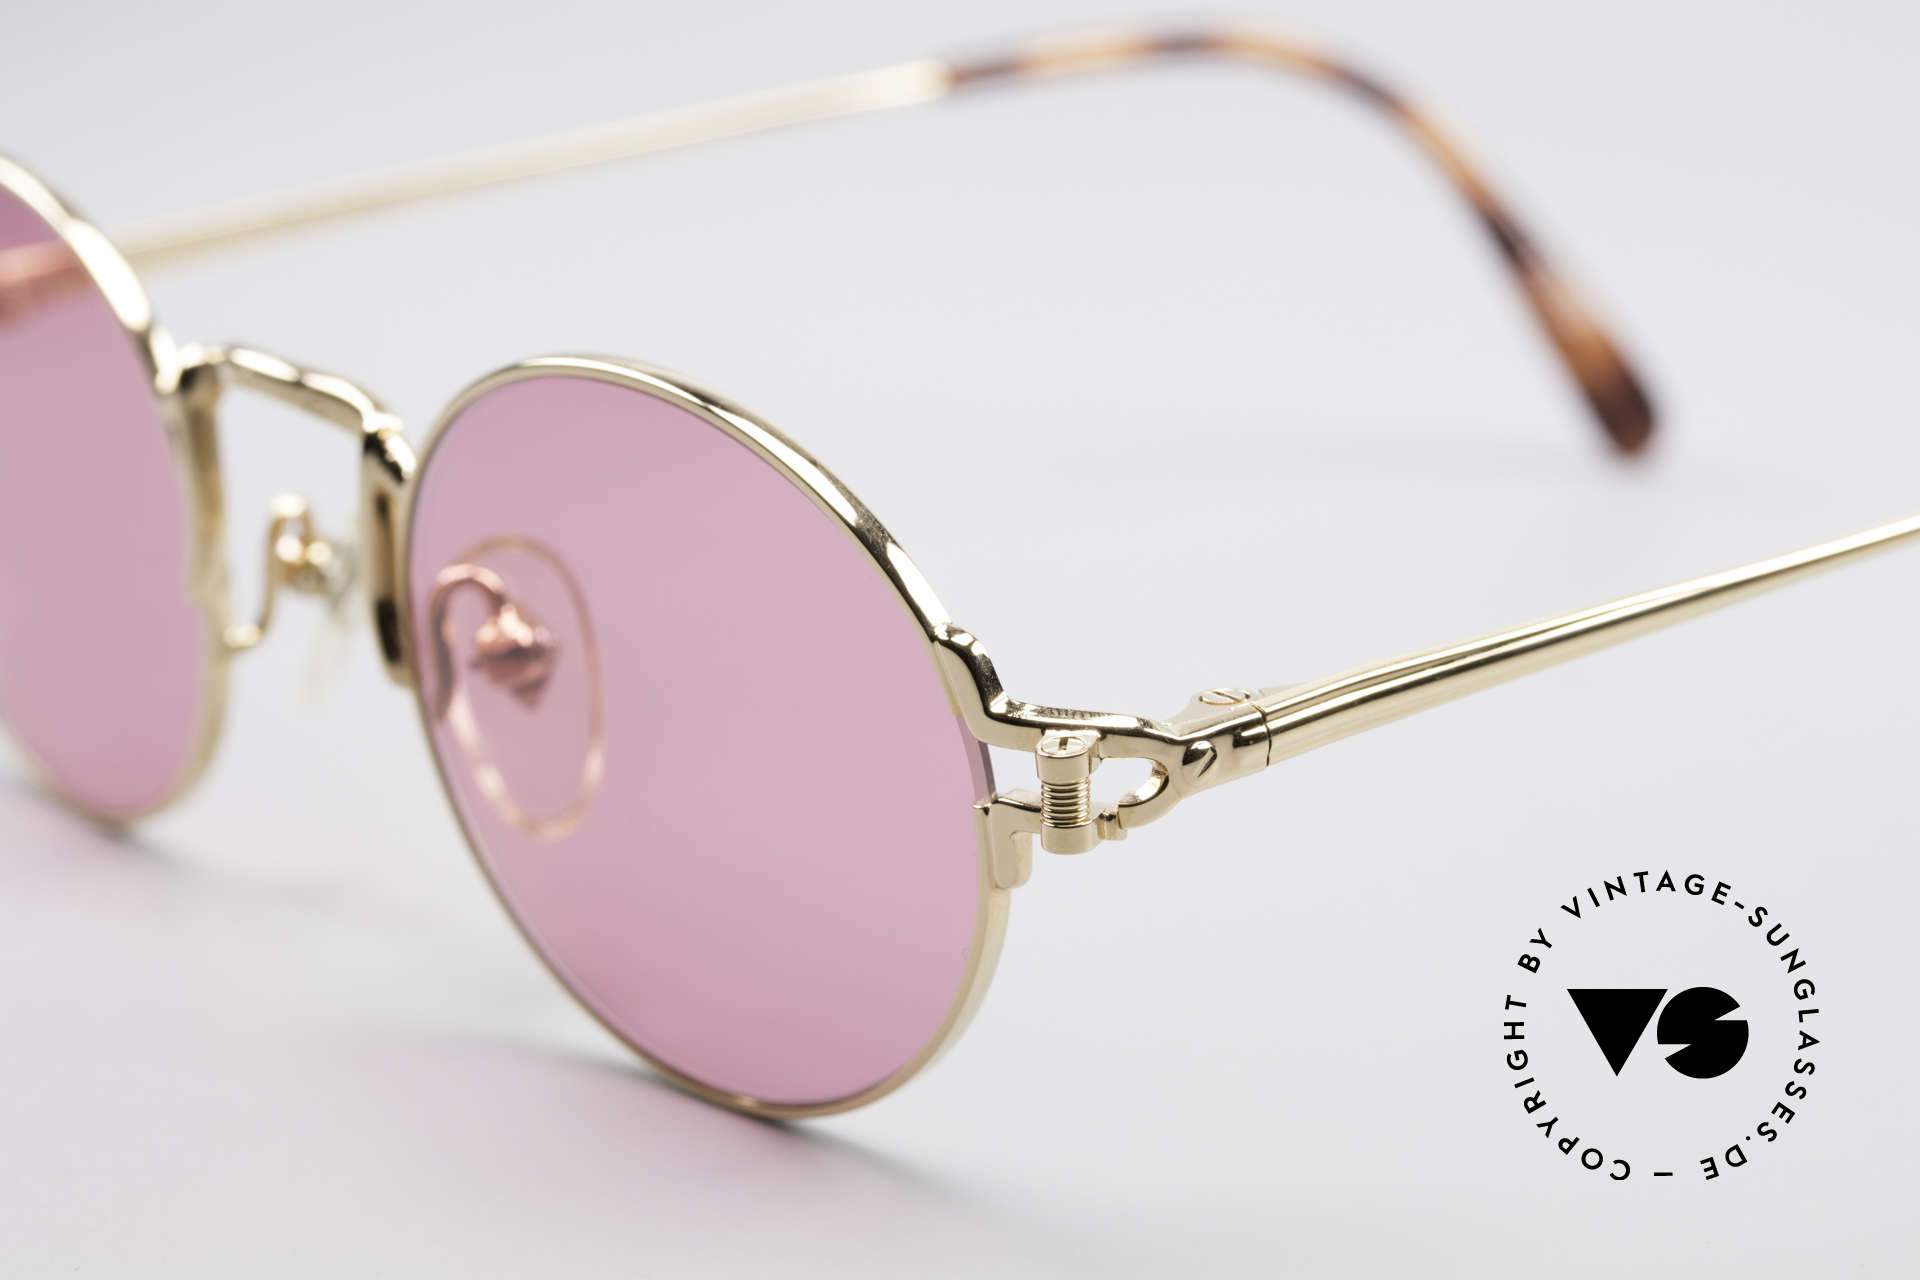 Jean Paul Gaultier 55-3171 Small Round Sunglasses, outstanding craftsmanship (22KT gold-plated frame), Made for Men and Women